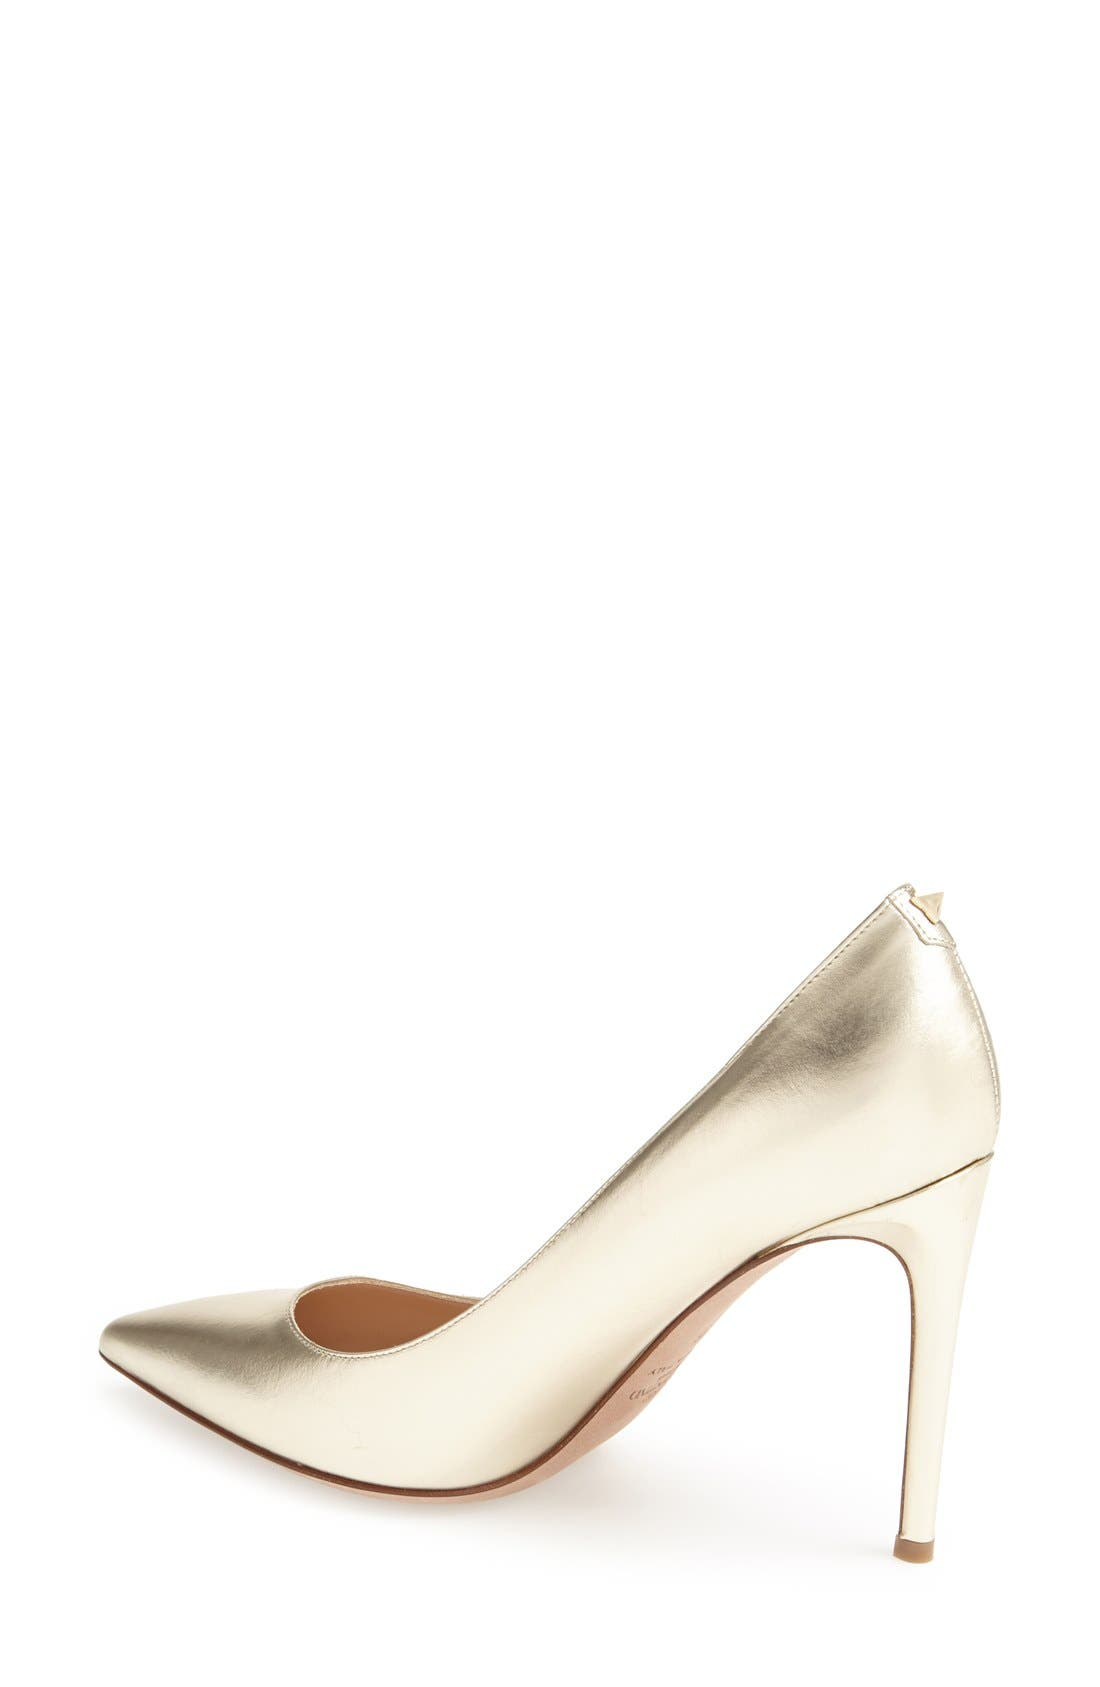 'Rockstud' Pump,                             Alternate thumbnail 2, color,                             Platino